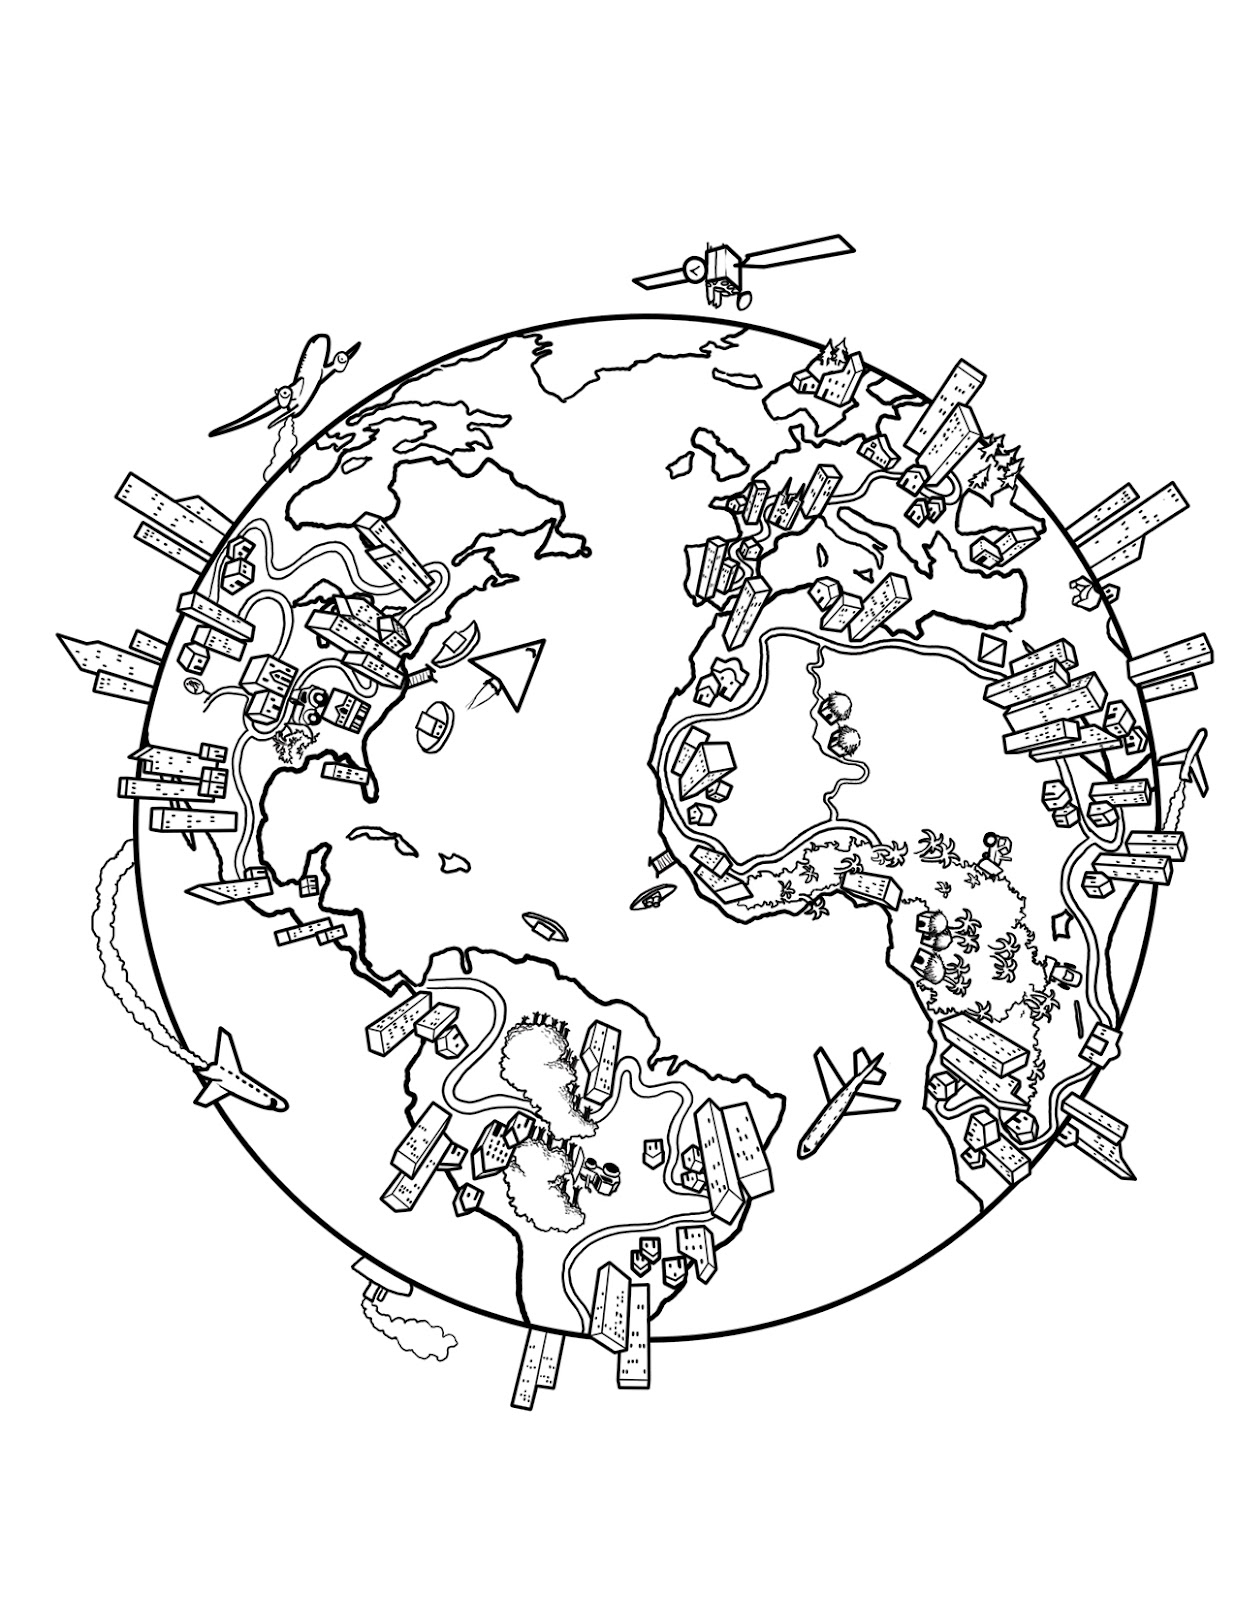 Map of the world coloring page for kids for Maps coloring pages